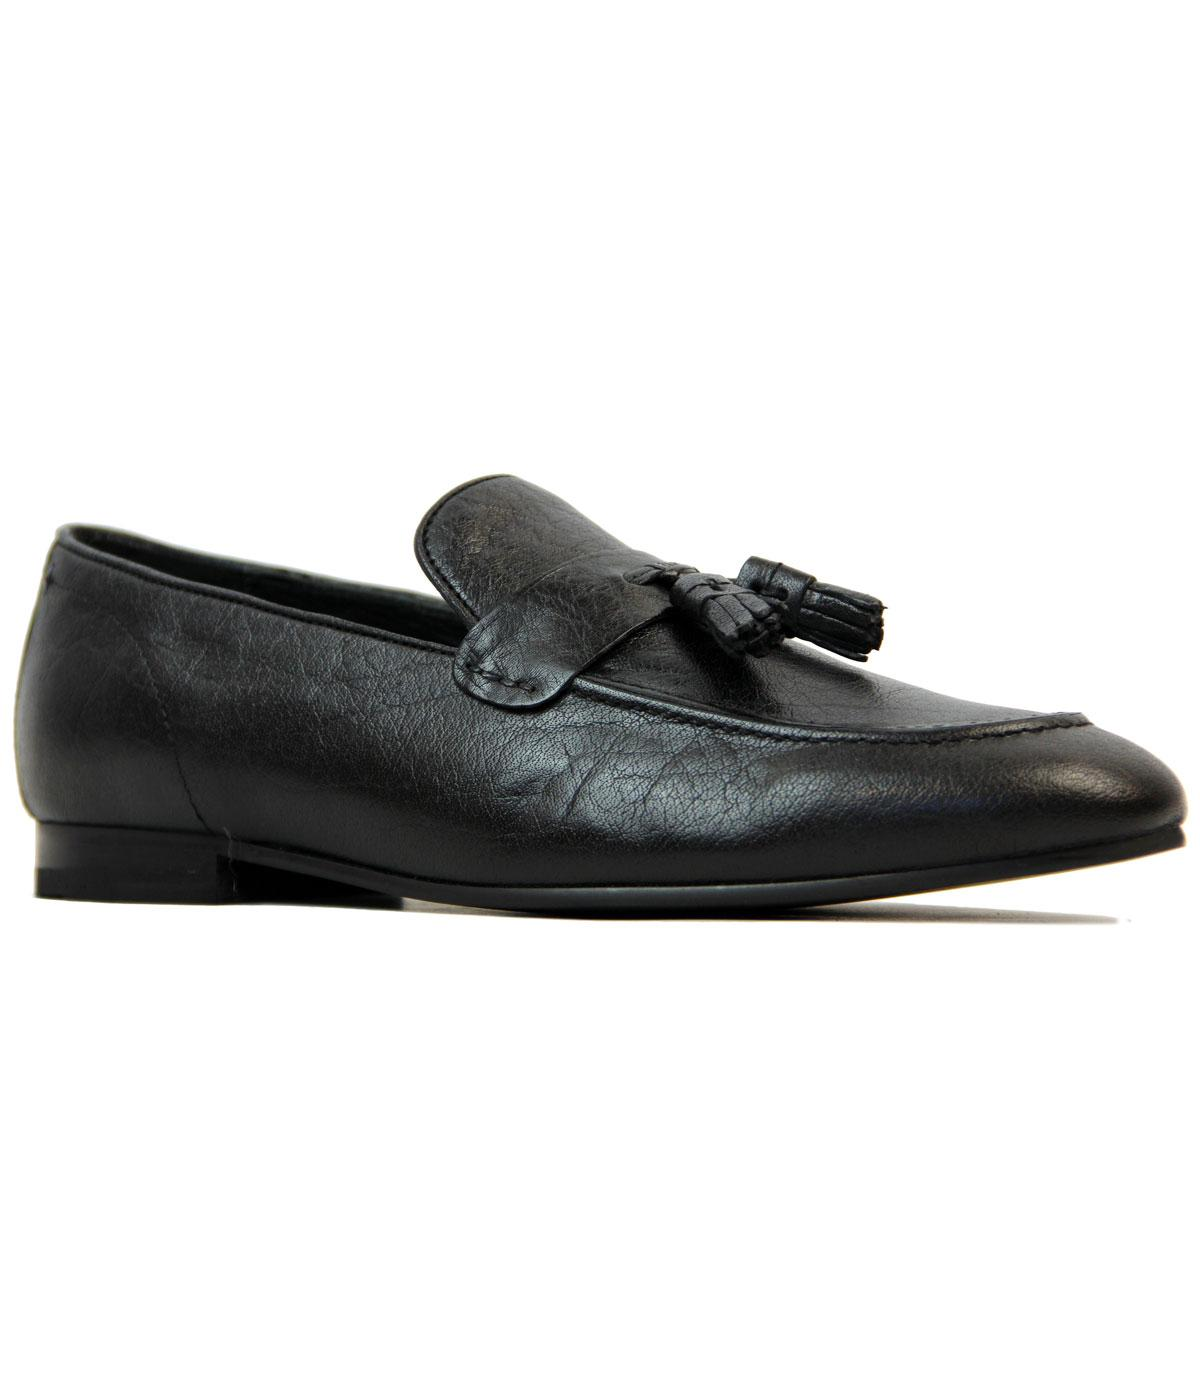 Meos BEN SHERMAN Retro Mod Slip On Tassel Loafers